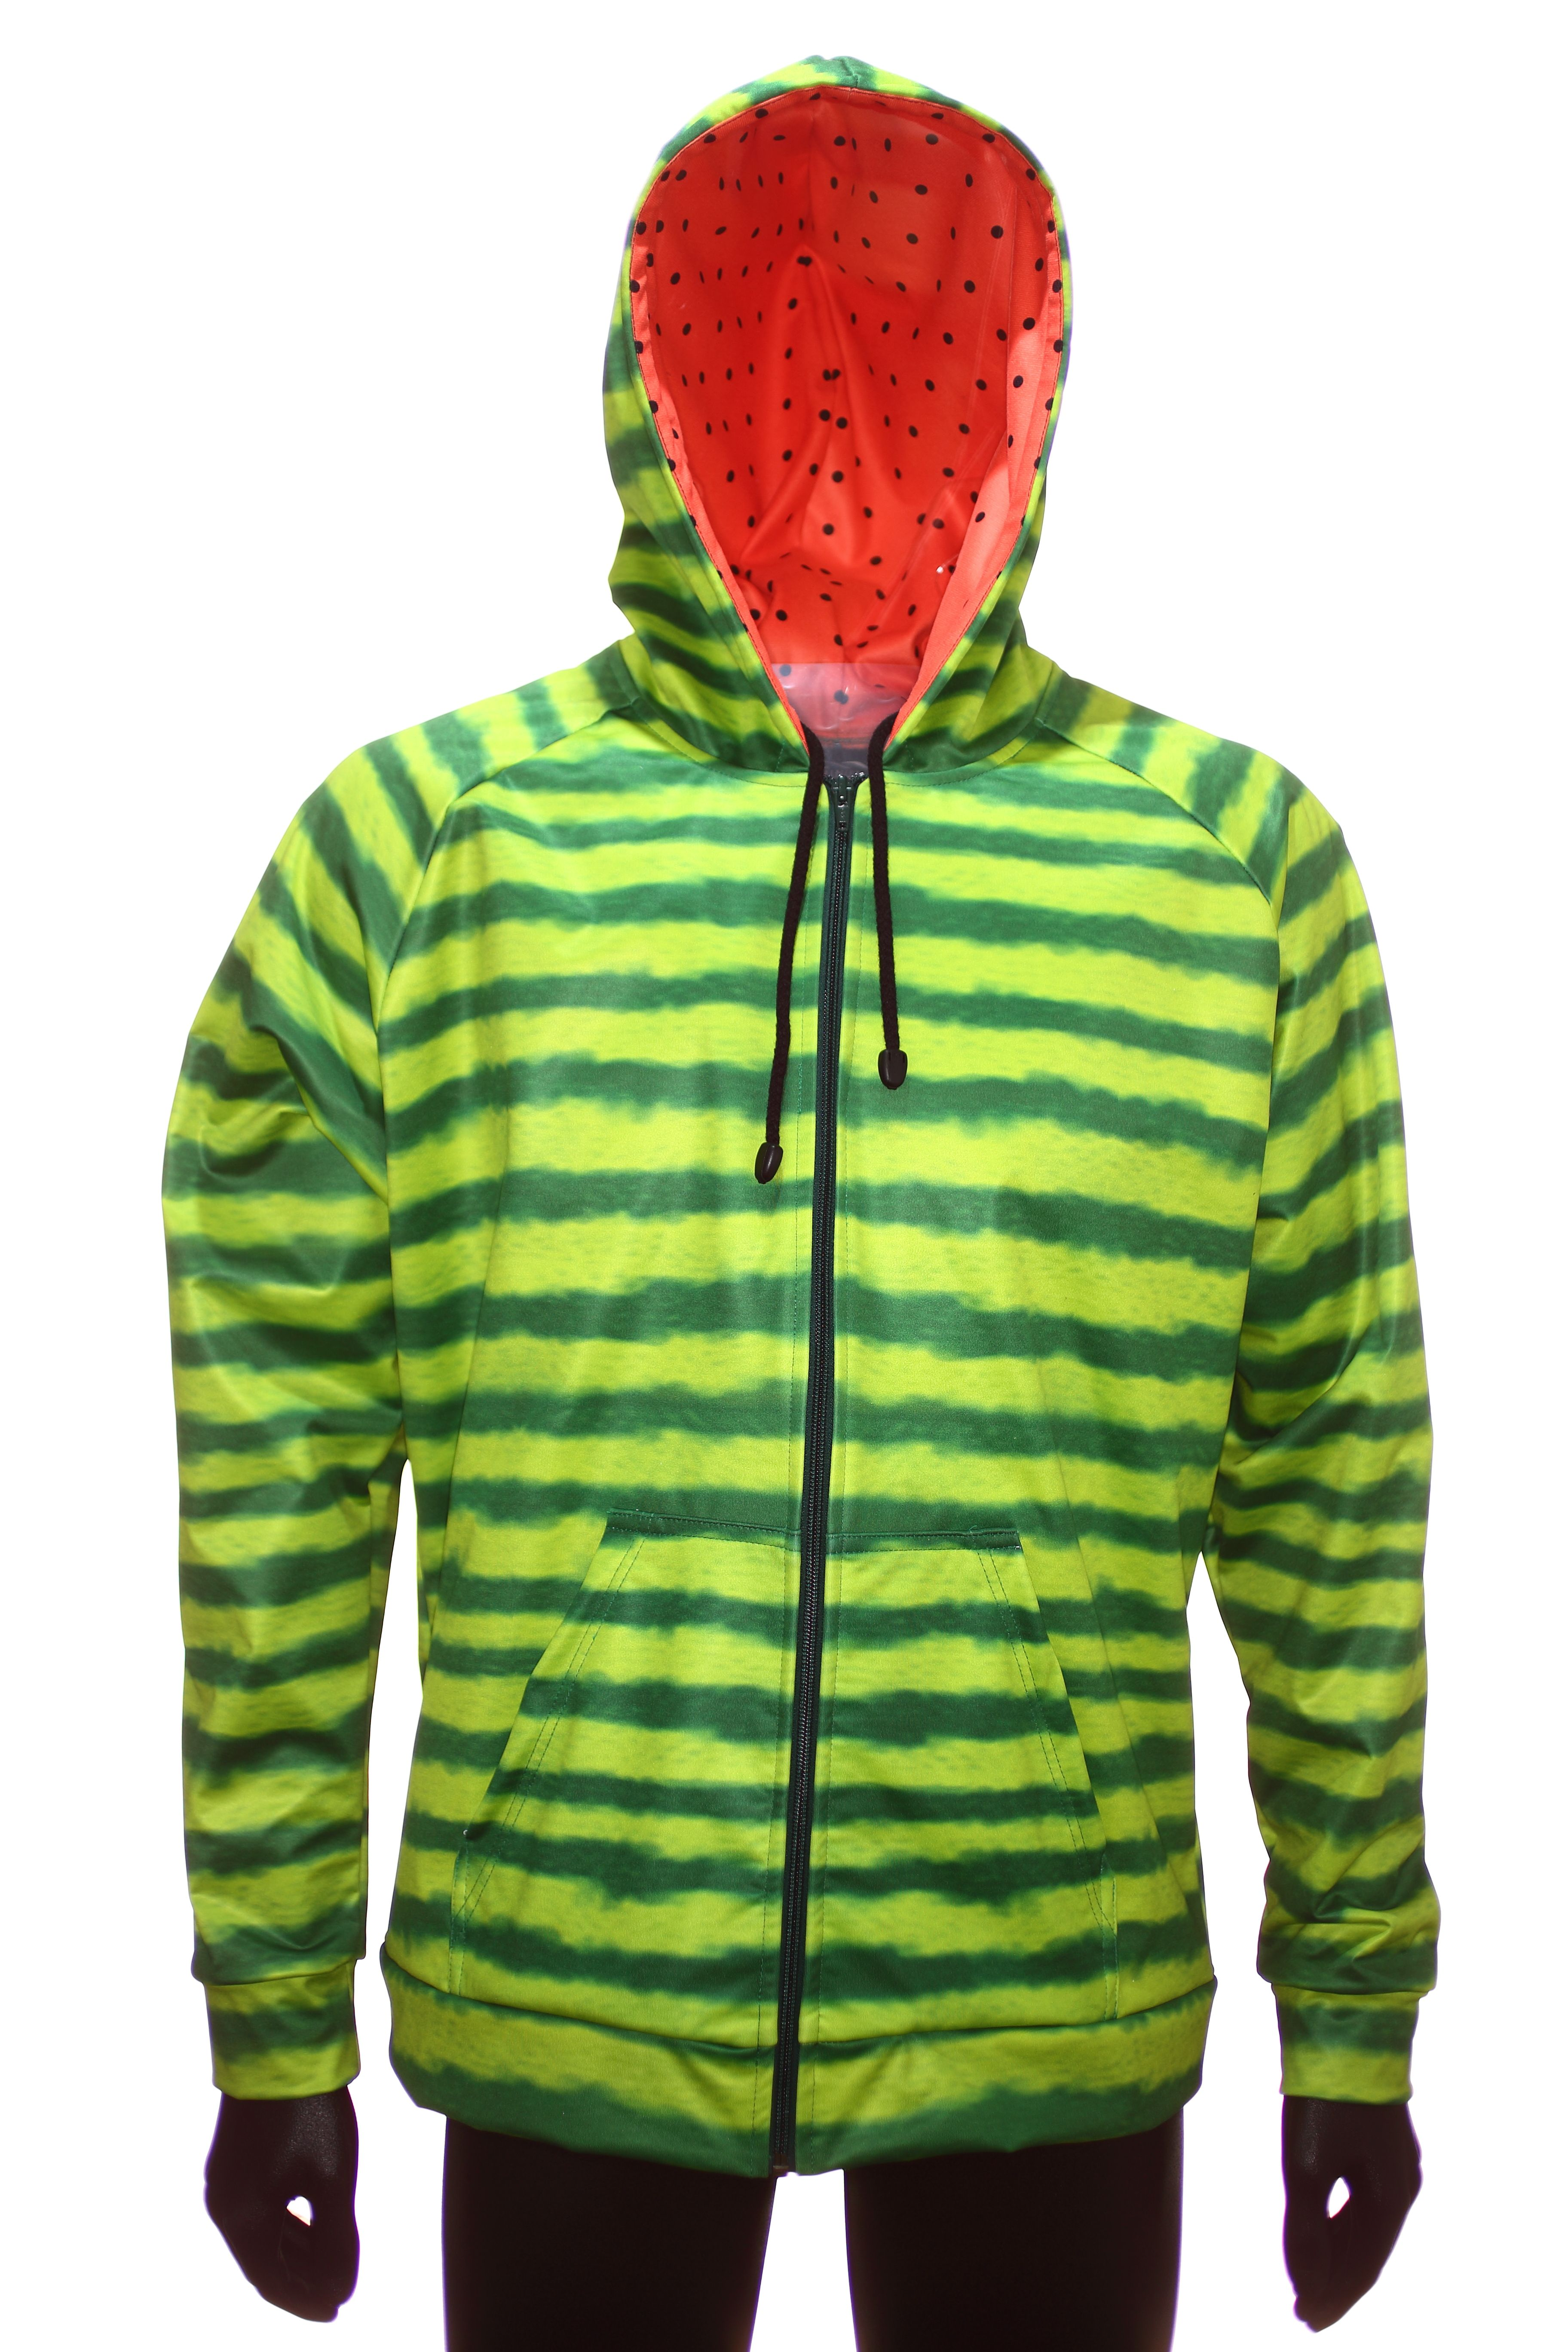 935464e8 Sublimated hoodie. Watermelon design. Printed hoody using dye-sublimation  Begins with white fabric